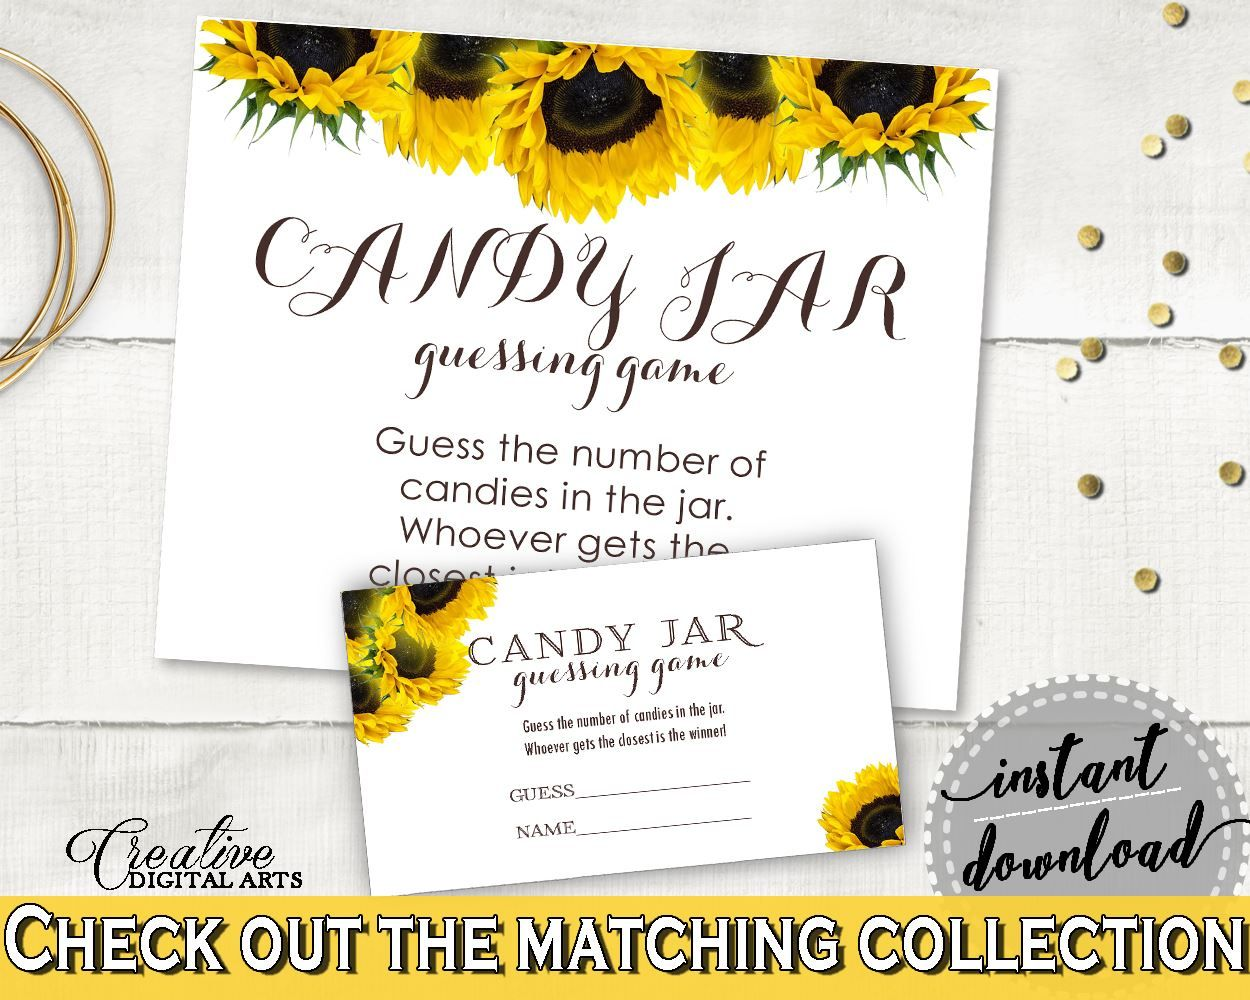 Candy Guessing Game Bridal Shower Candy Guessing Game Sunflower Bridal Shower Candy Guessing Game Bridal Shower Sunflower Candy SSNP1 - Digital Product #bride #bridal